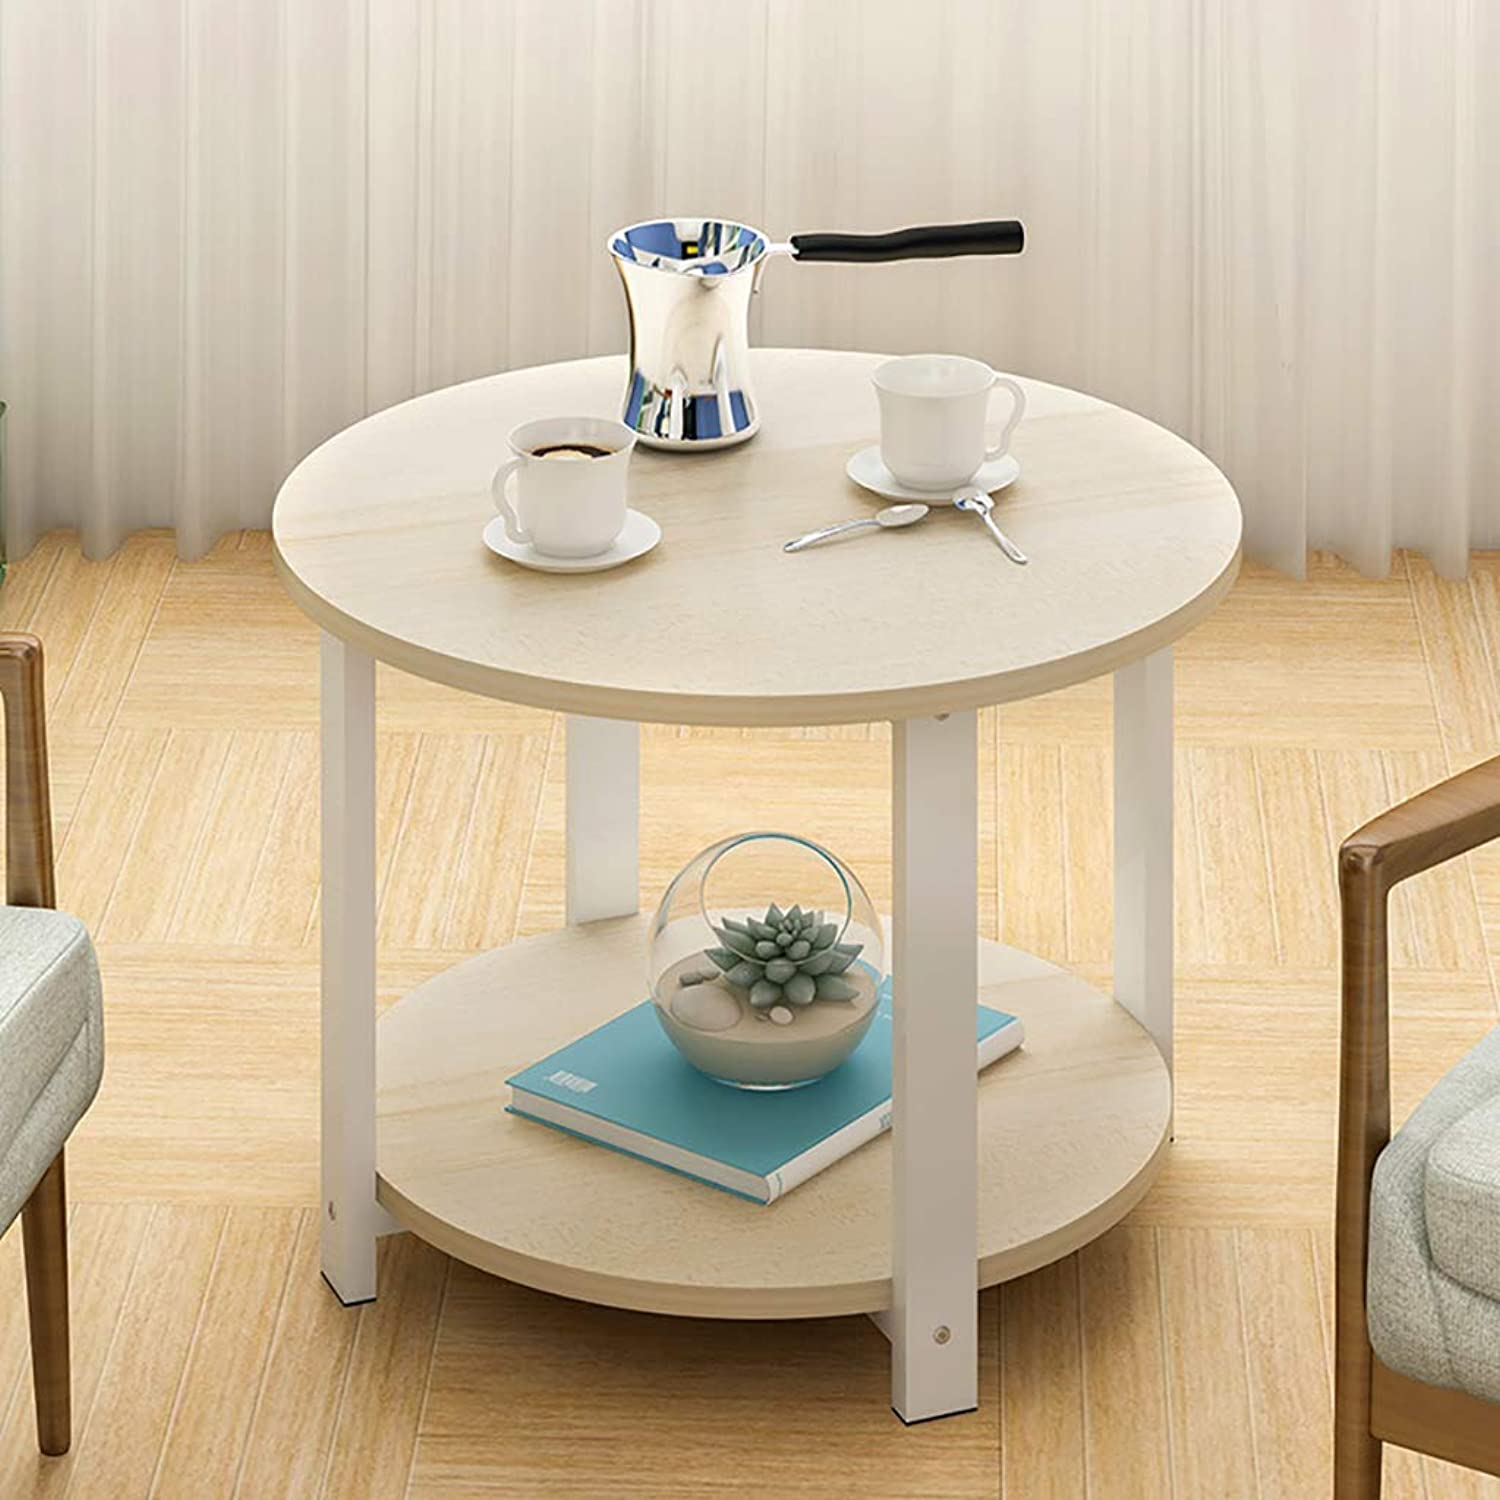 White Black Side Table,Lack Small Side Coffee Tables Art Side Coffee Dining End Table,Snack Table with Wood Finish Coffee, Sofa Side End Table, Snack Table with Wood Finish Coffee